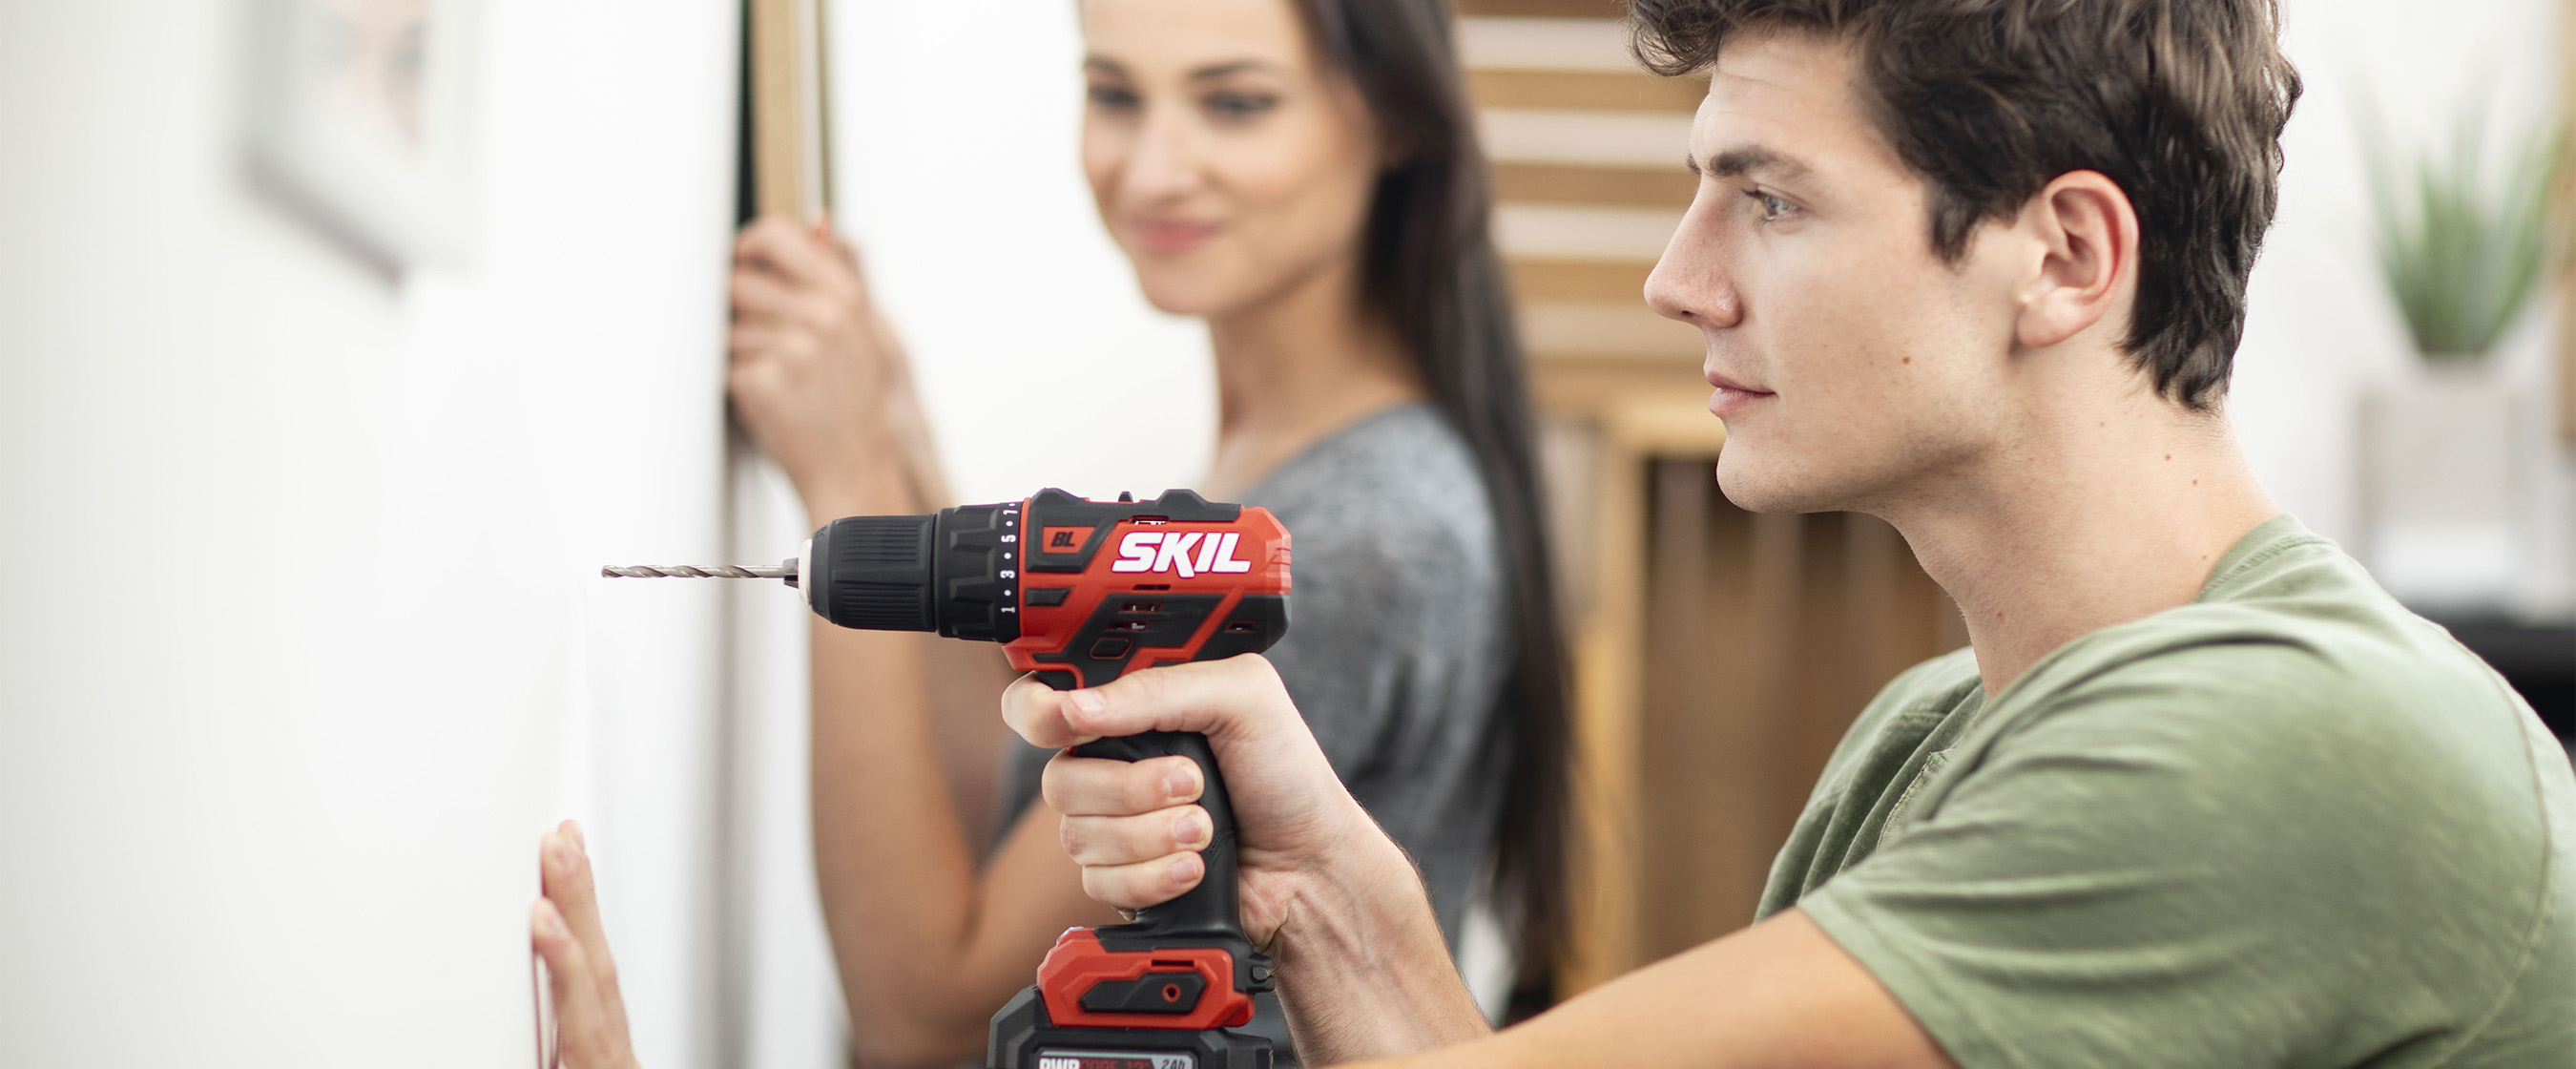 Man using a SKIL Drill Driver while woman watches